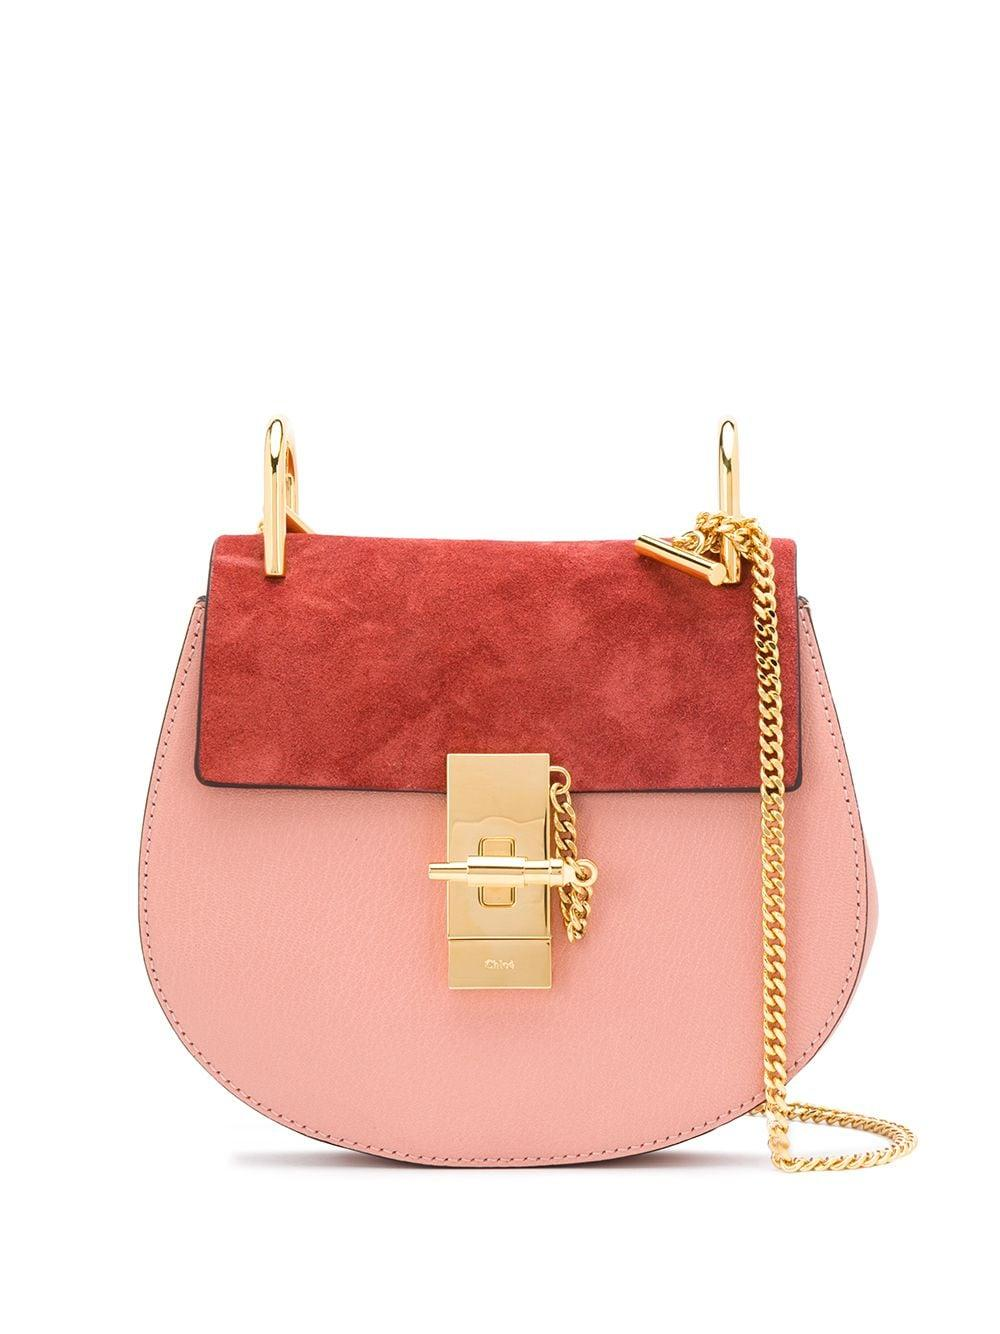 Drew Bi-Color Bag With Chain Strap